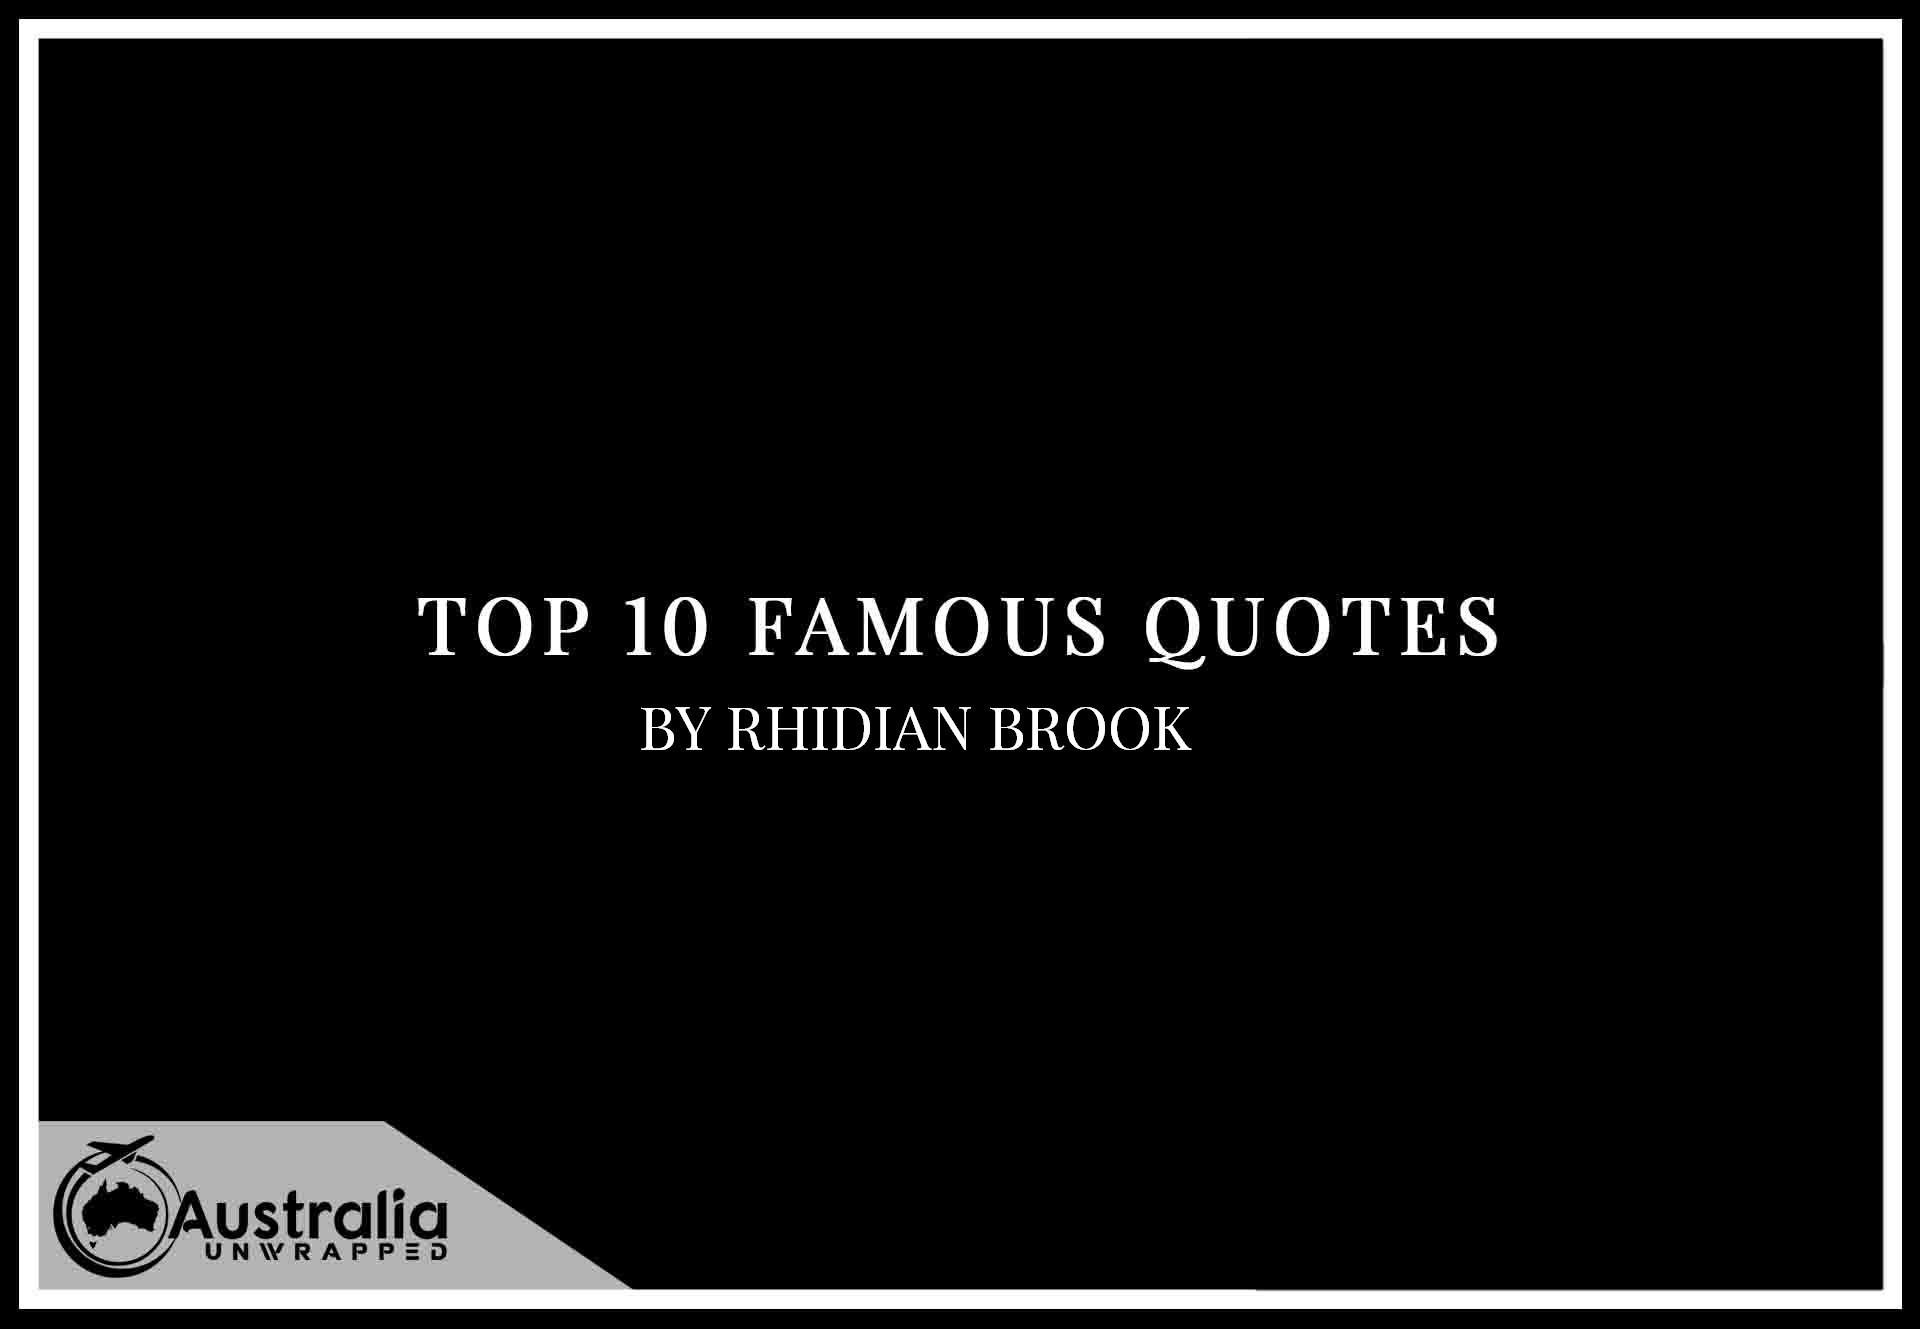 Rhidian Brook's Top 10 Popular and Famous Quotes